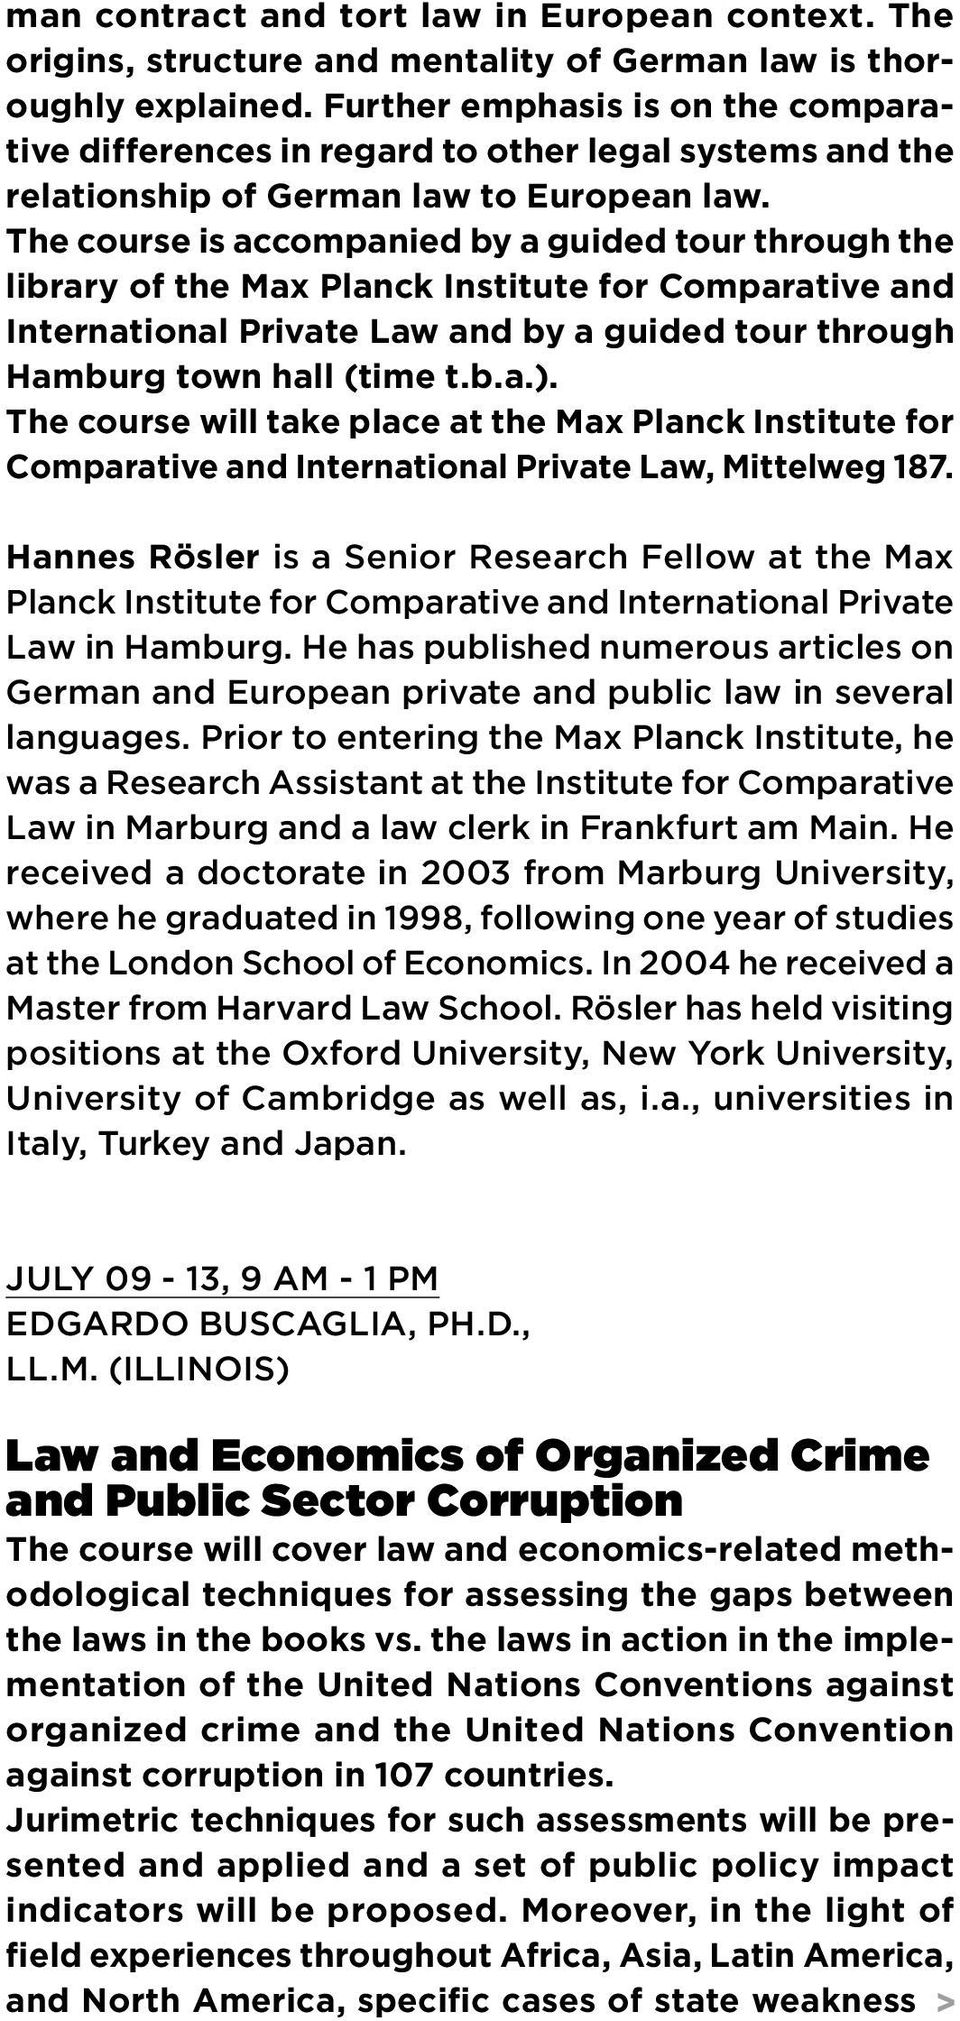 The course is accompanied by a guided tour through the library of the Max Planck Institute for Comparative and International Private Law and by a guided tour through Hamburg town hall (time t.b.a.).